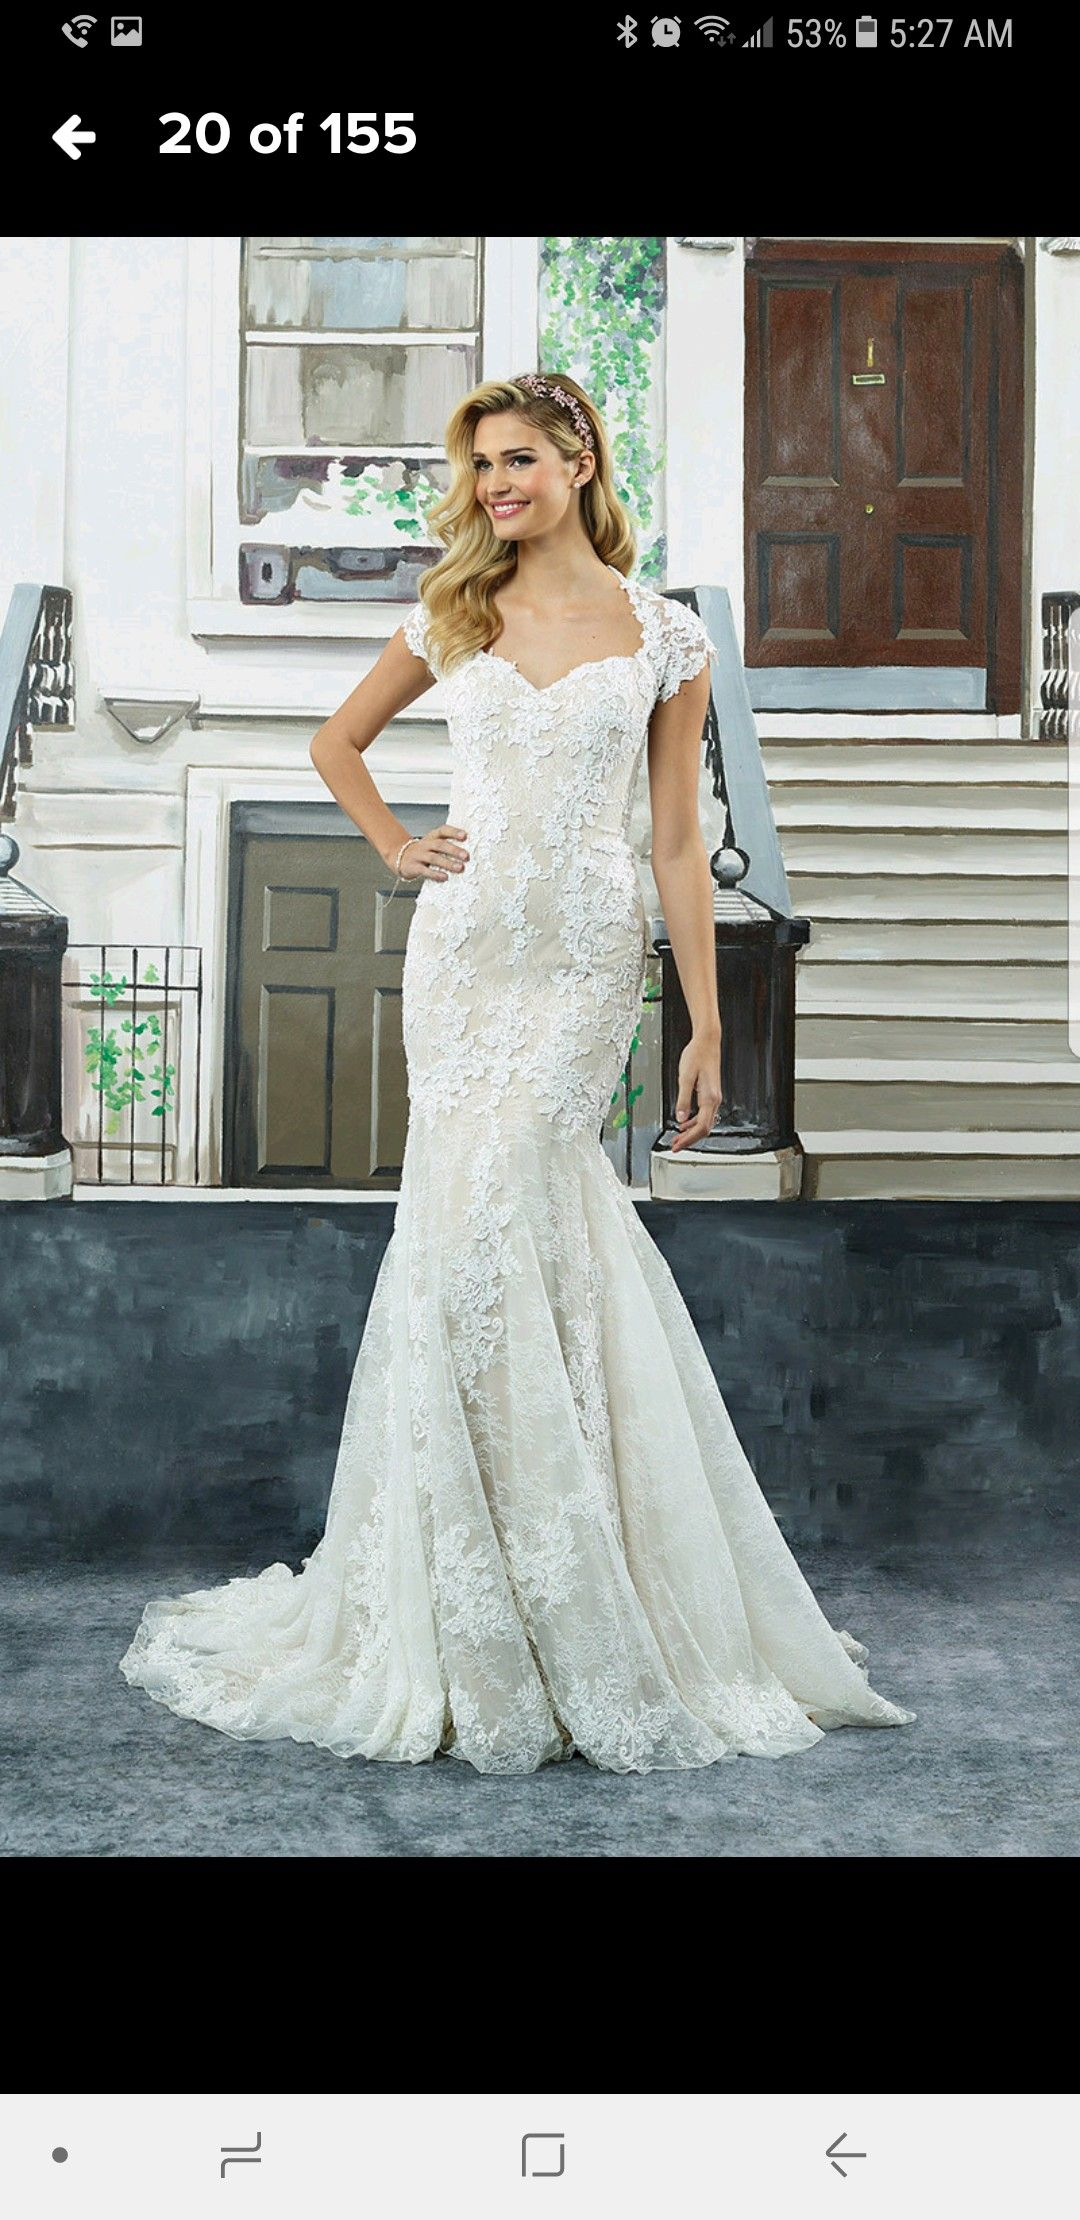 Pin by shelby shaw on wedding dresses ideas pinterest dress